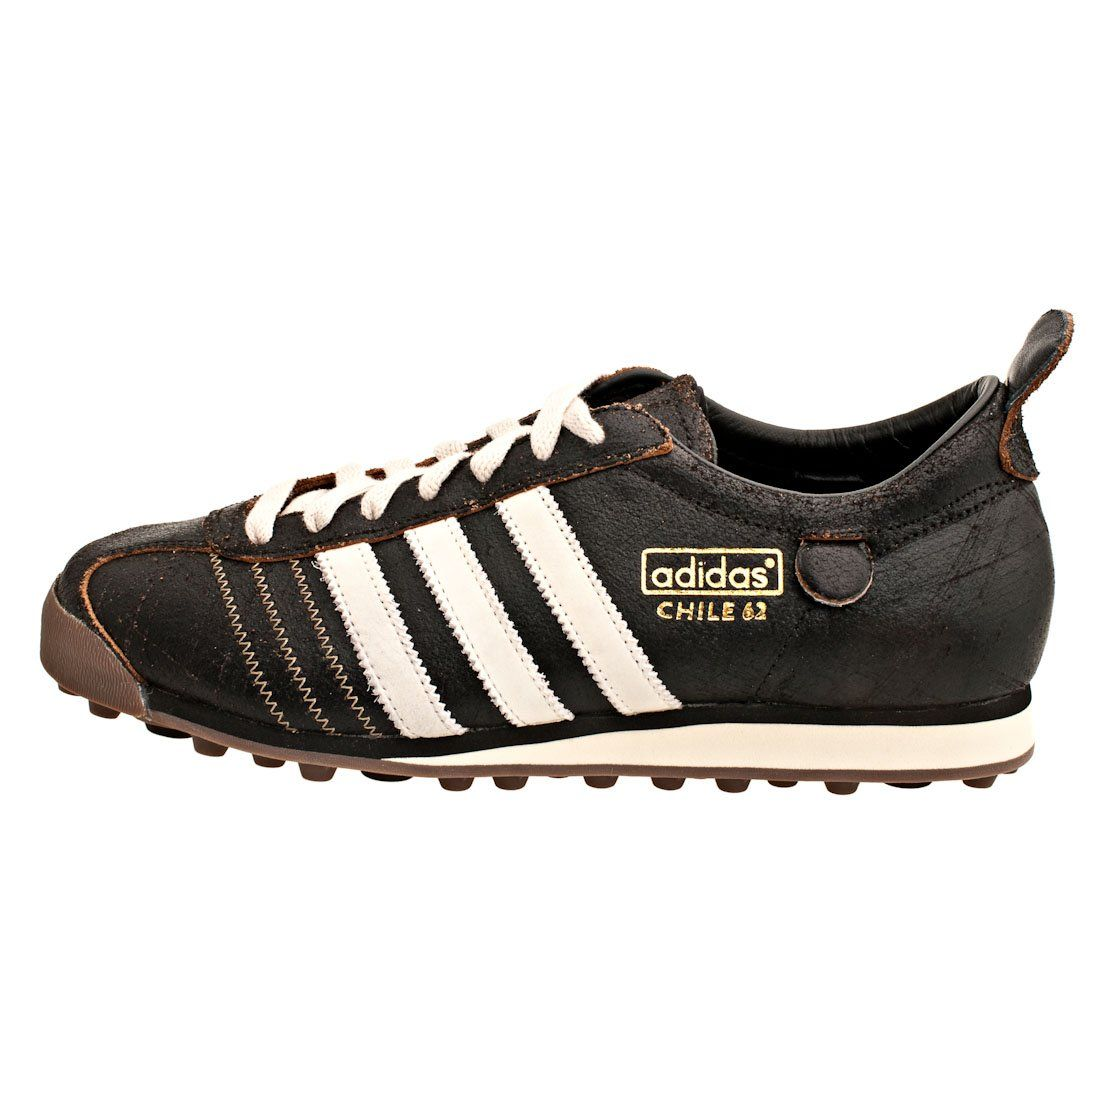 the one and only Adidas Chile 62 | My Style | Schuhe und